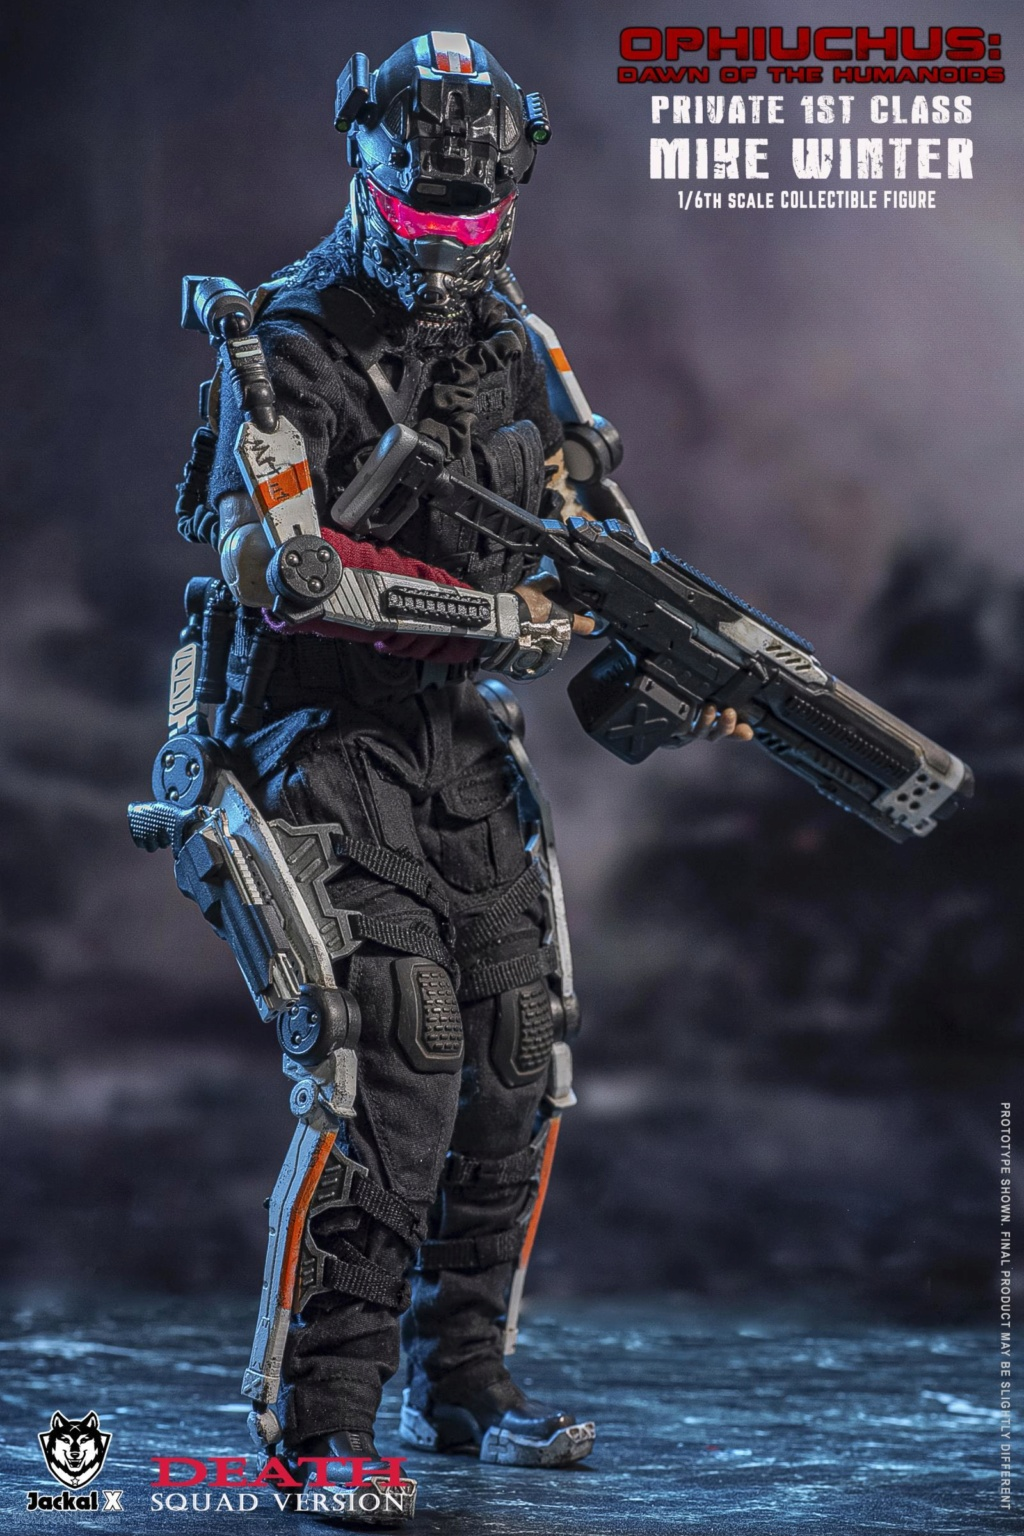 male - NEW PRODUCT: JackalX: 1/6 Ophiuchus: Dawn of Humanoid: Private 1st Class Mike Winter Collectible Figure (2 Versions) 43202035